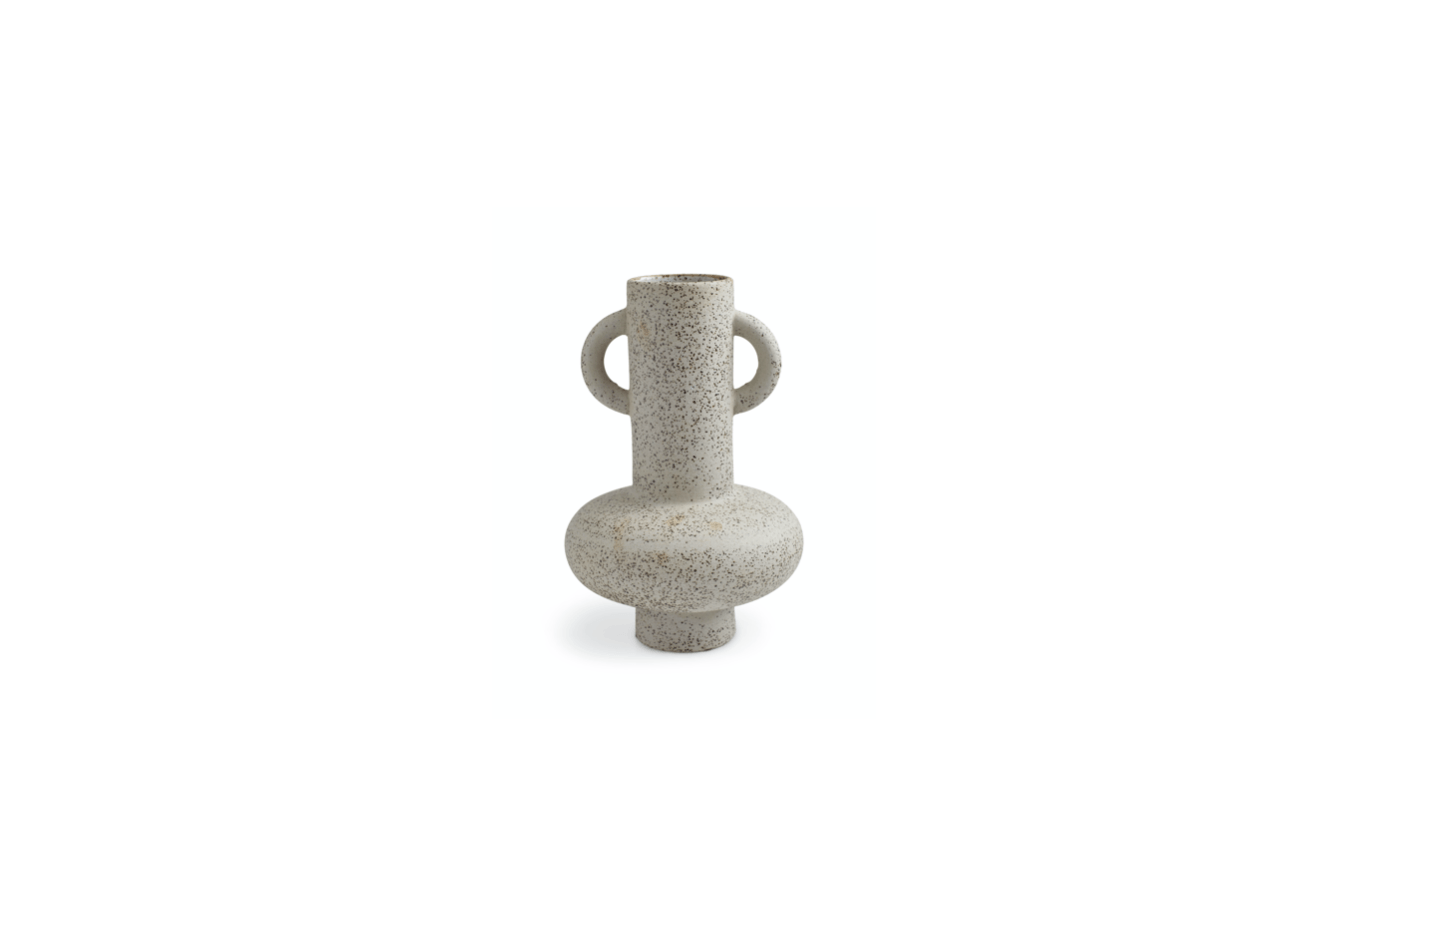 We like the sculptural ceramic Roux Vase (shown here in the large version), inspired by modernist shapes and earthy materials and perfect for a bouquet of fall flowers.